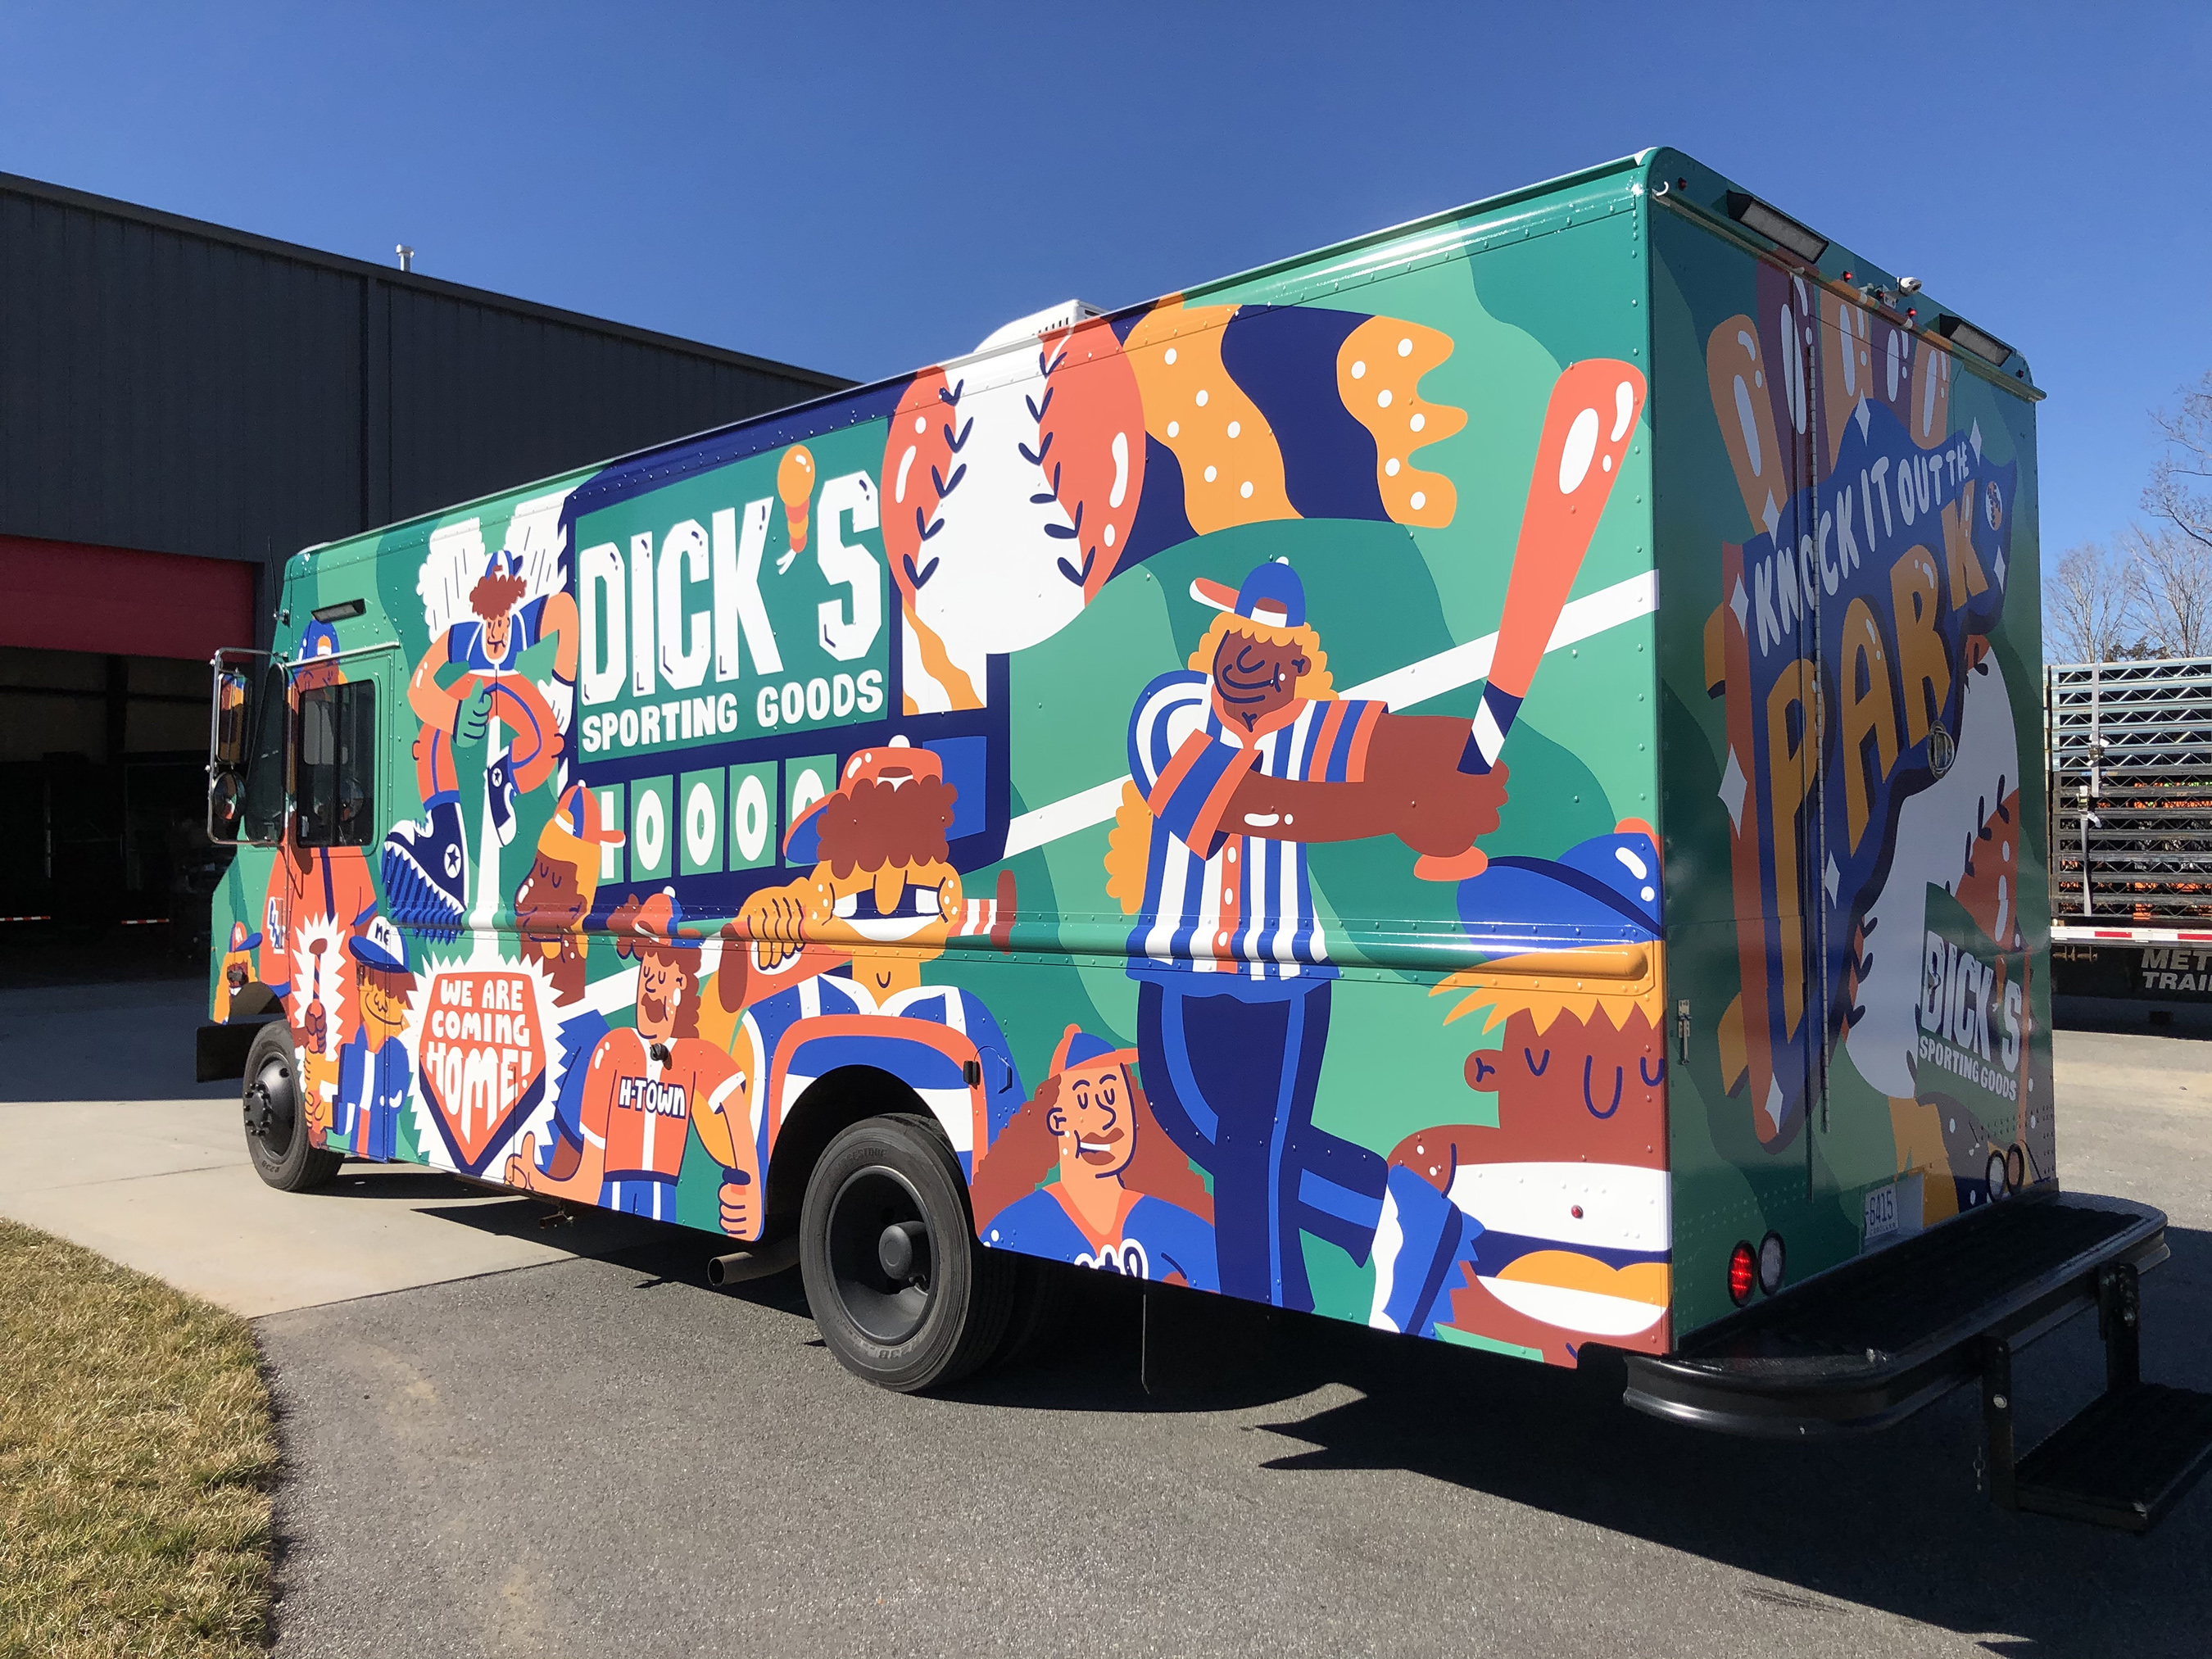 DICK'S Sporting Goods and The DICK'S Sporting Goods Foundation Provide Equipment To 10,000 Baseball and Softball Youth Athletes On 8-City Tour